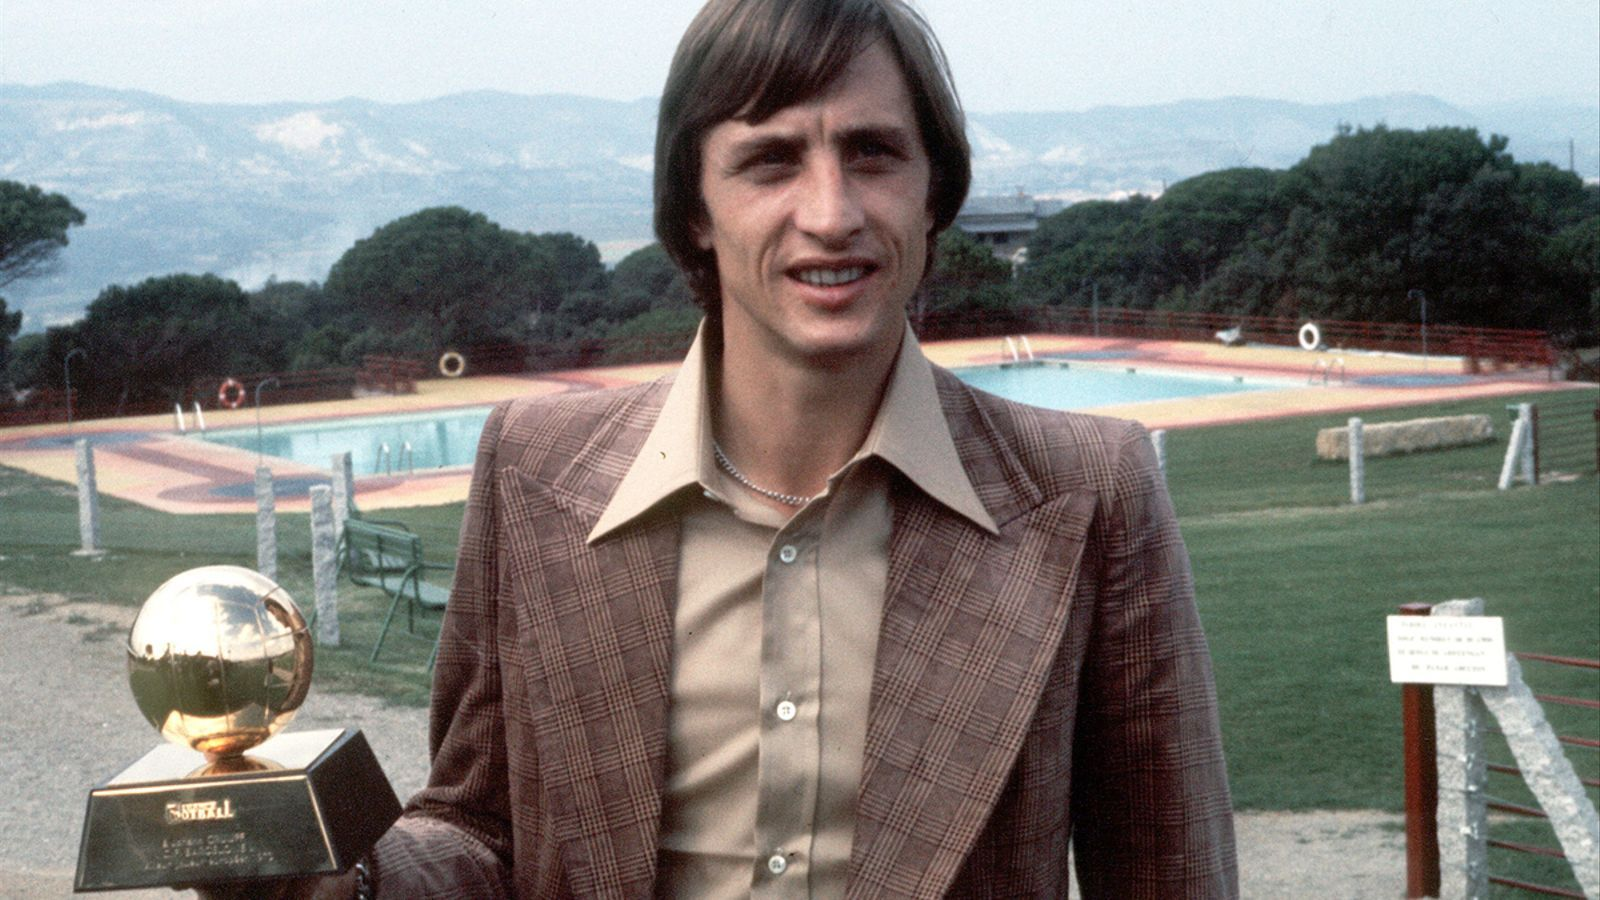 Cruyff amb la Pilota d'Or l'any 1973.